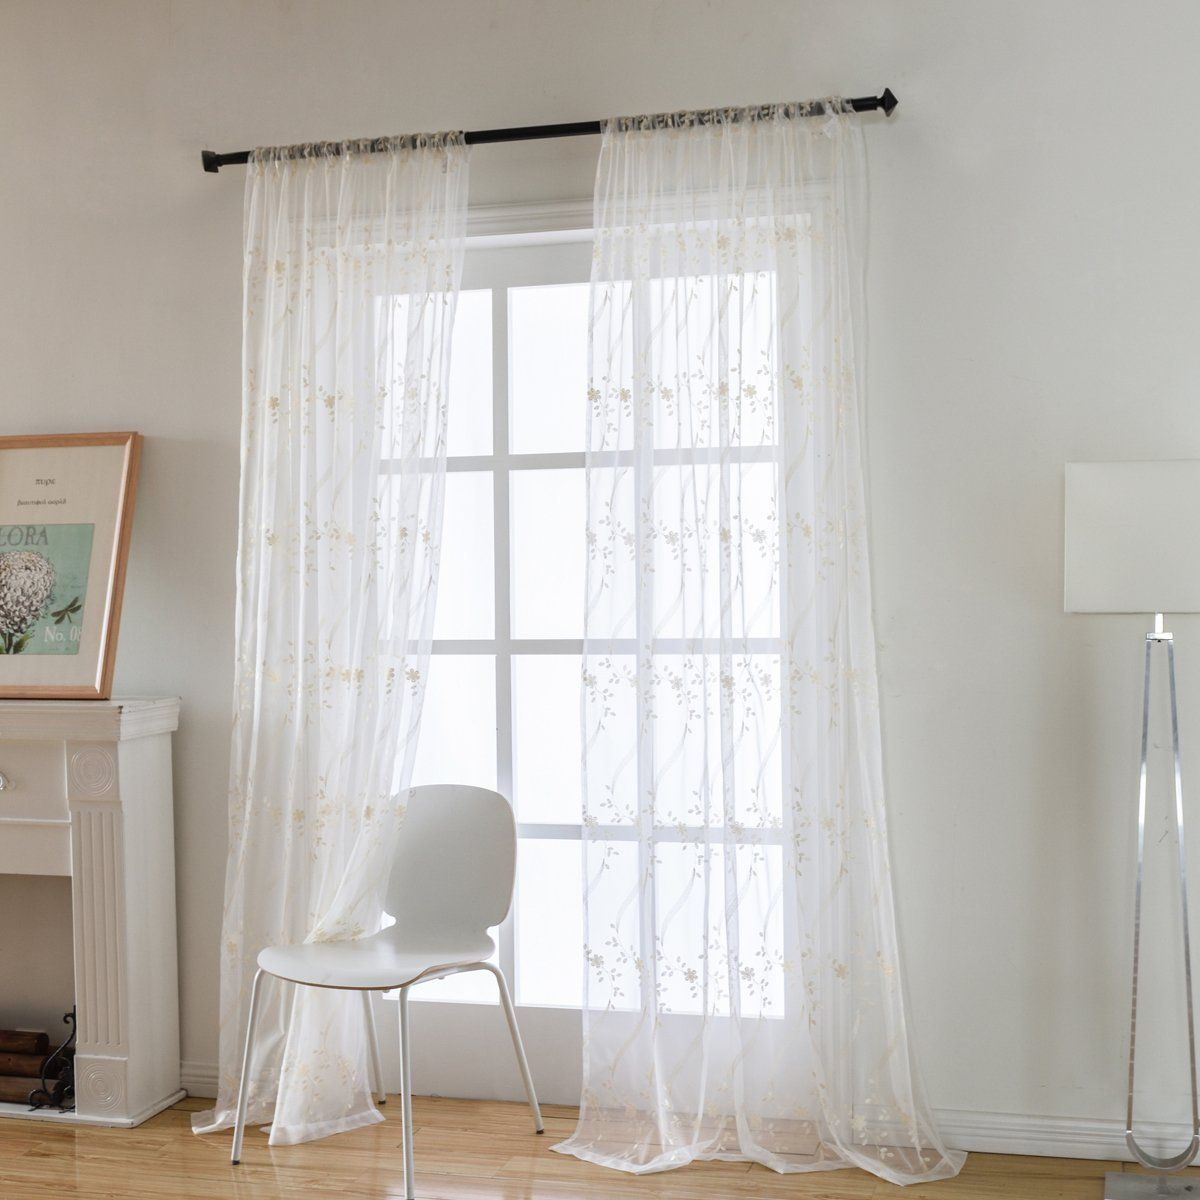 Wave Pattern Floral Embroidered Semi Sheer Curtains For Living